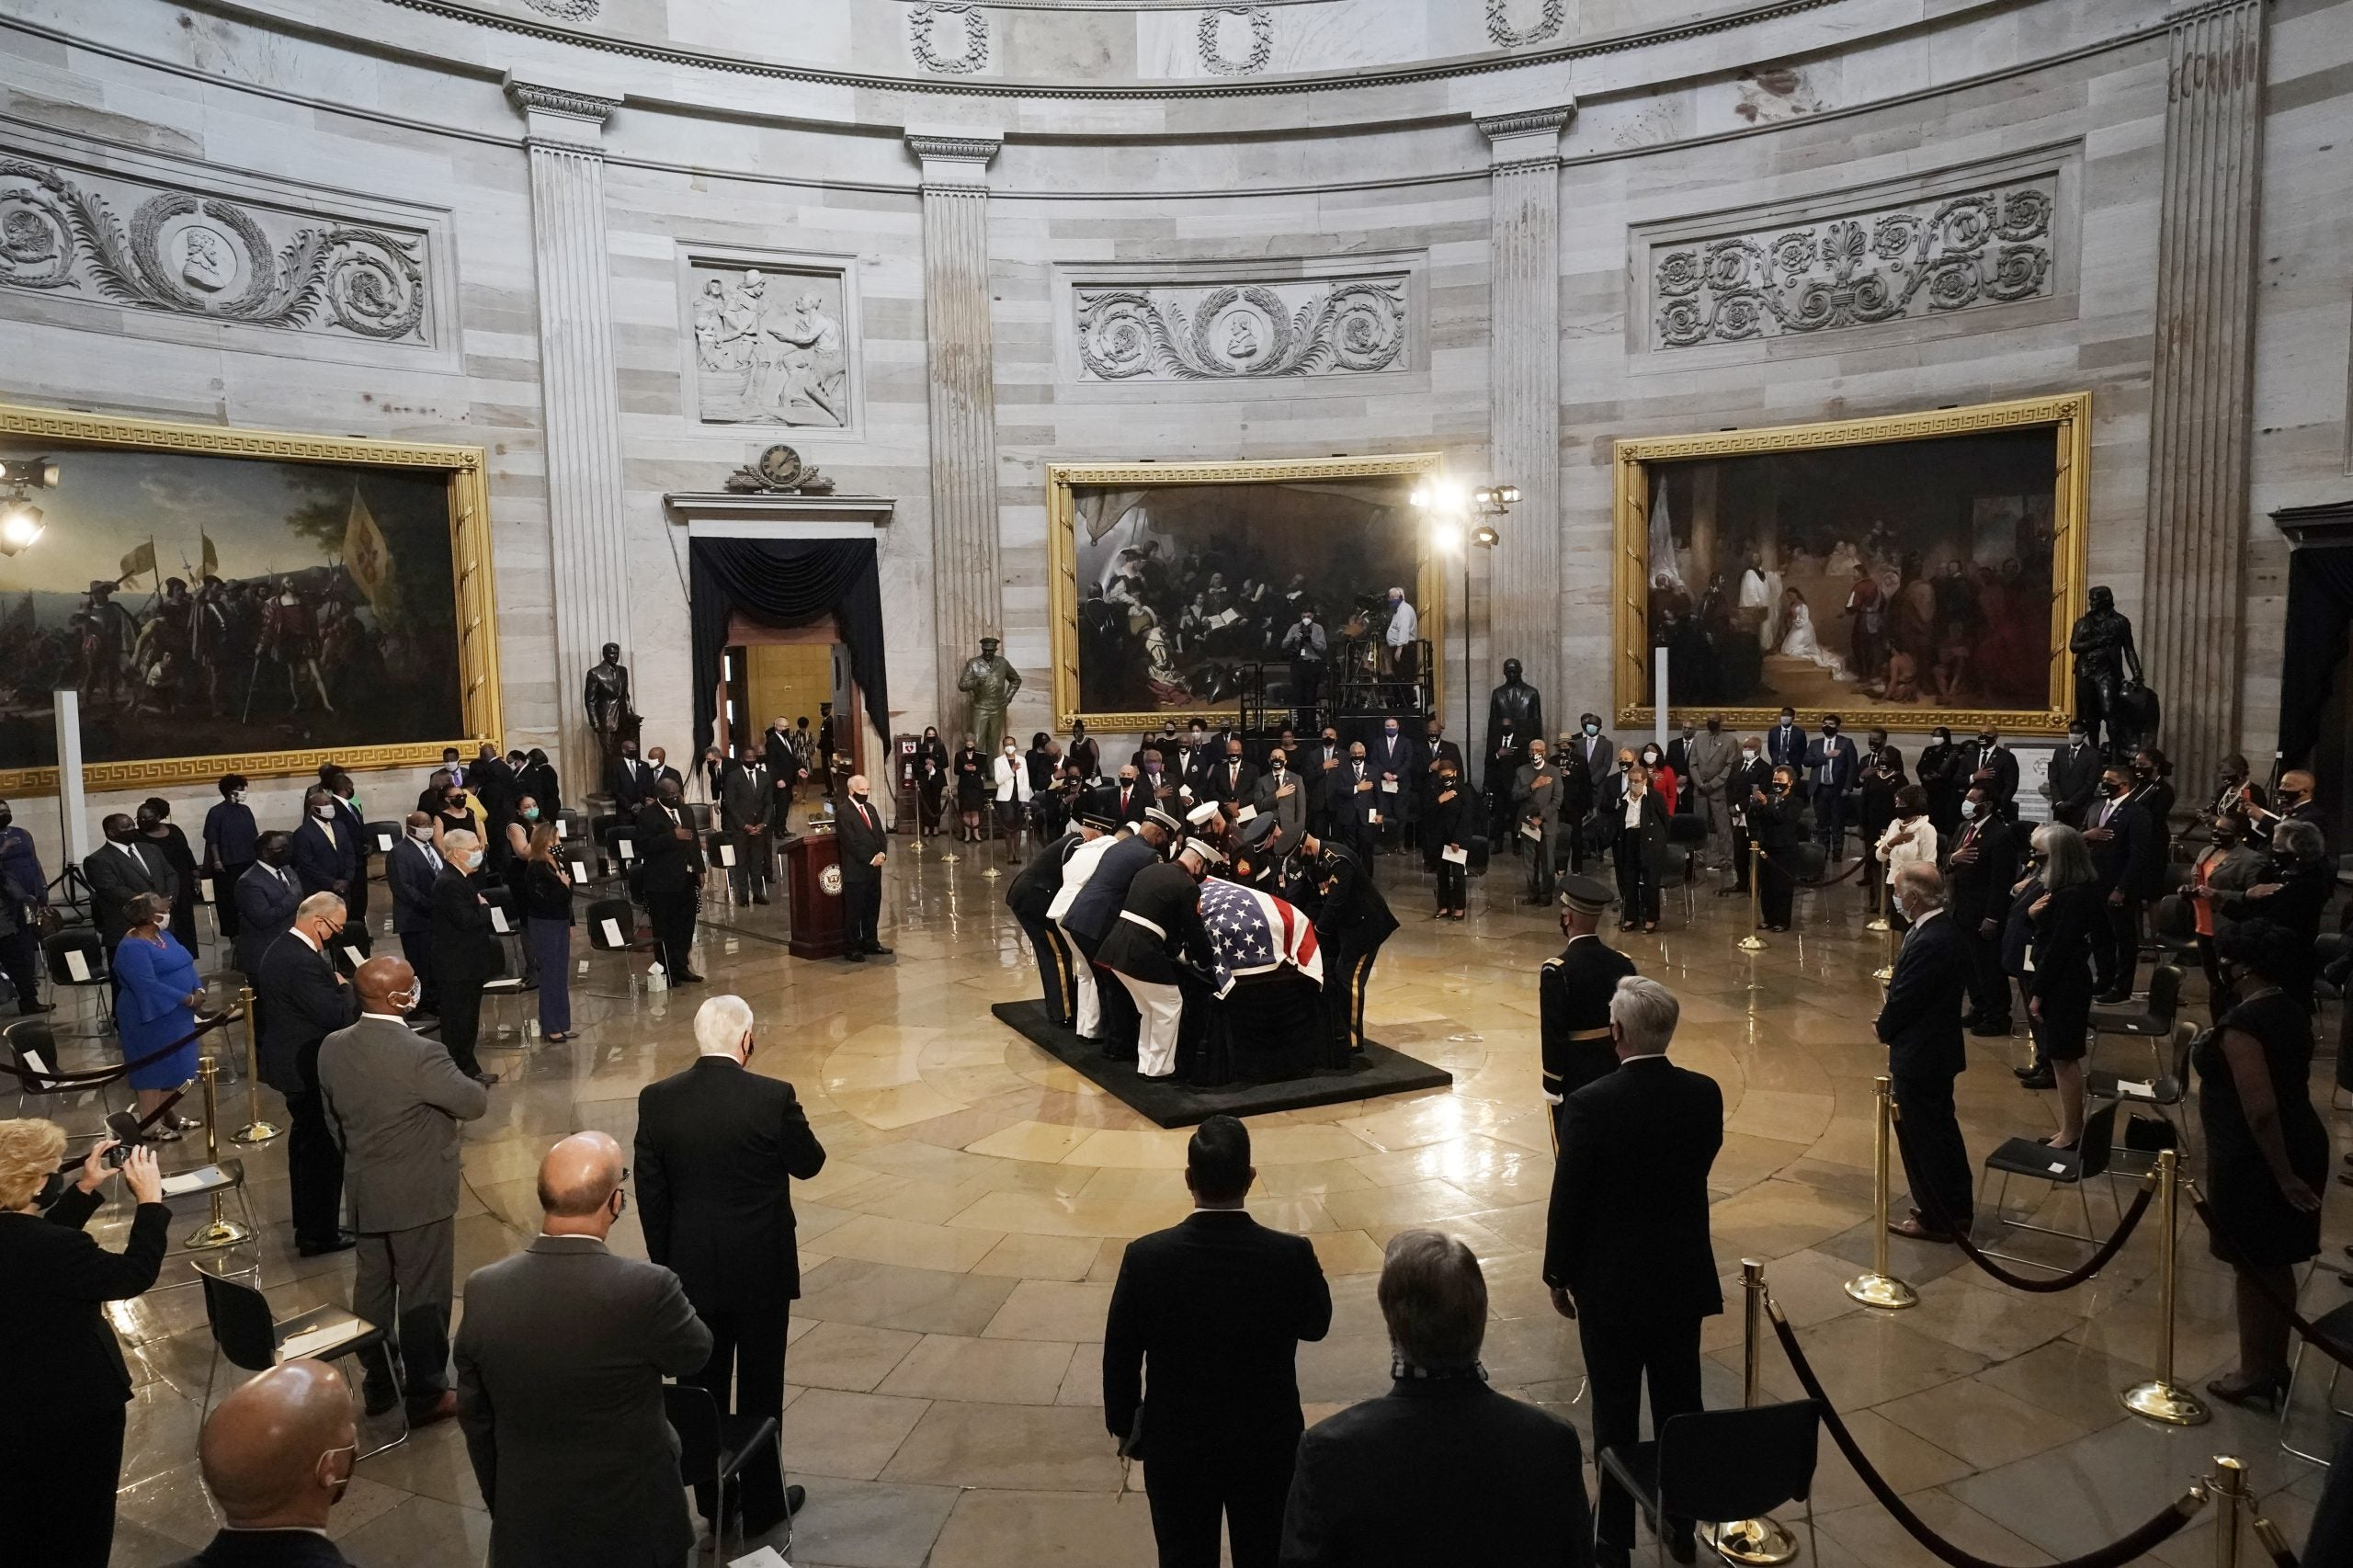 WASHINGTON, DC - JULY 27: The flag-draped casket of the late Rep. John Lewis (D-GA) is placed on the catafalque by a joint services military honor guard where it will lie is state in the Capitol Rotunda on July 27, 2020 in Washington, DC. Lewis, a civil rights icon and fierce advocate of voting rights for African Americans, will lie in state at the Capitol. Lewis died on July 17 at the age of 80. (Photo by J. Scott Applewhite - Pool/Getty Images)